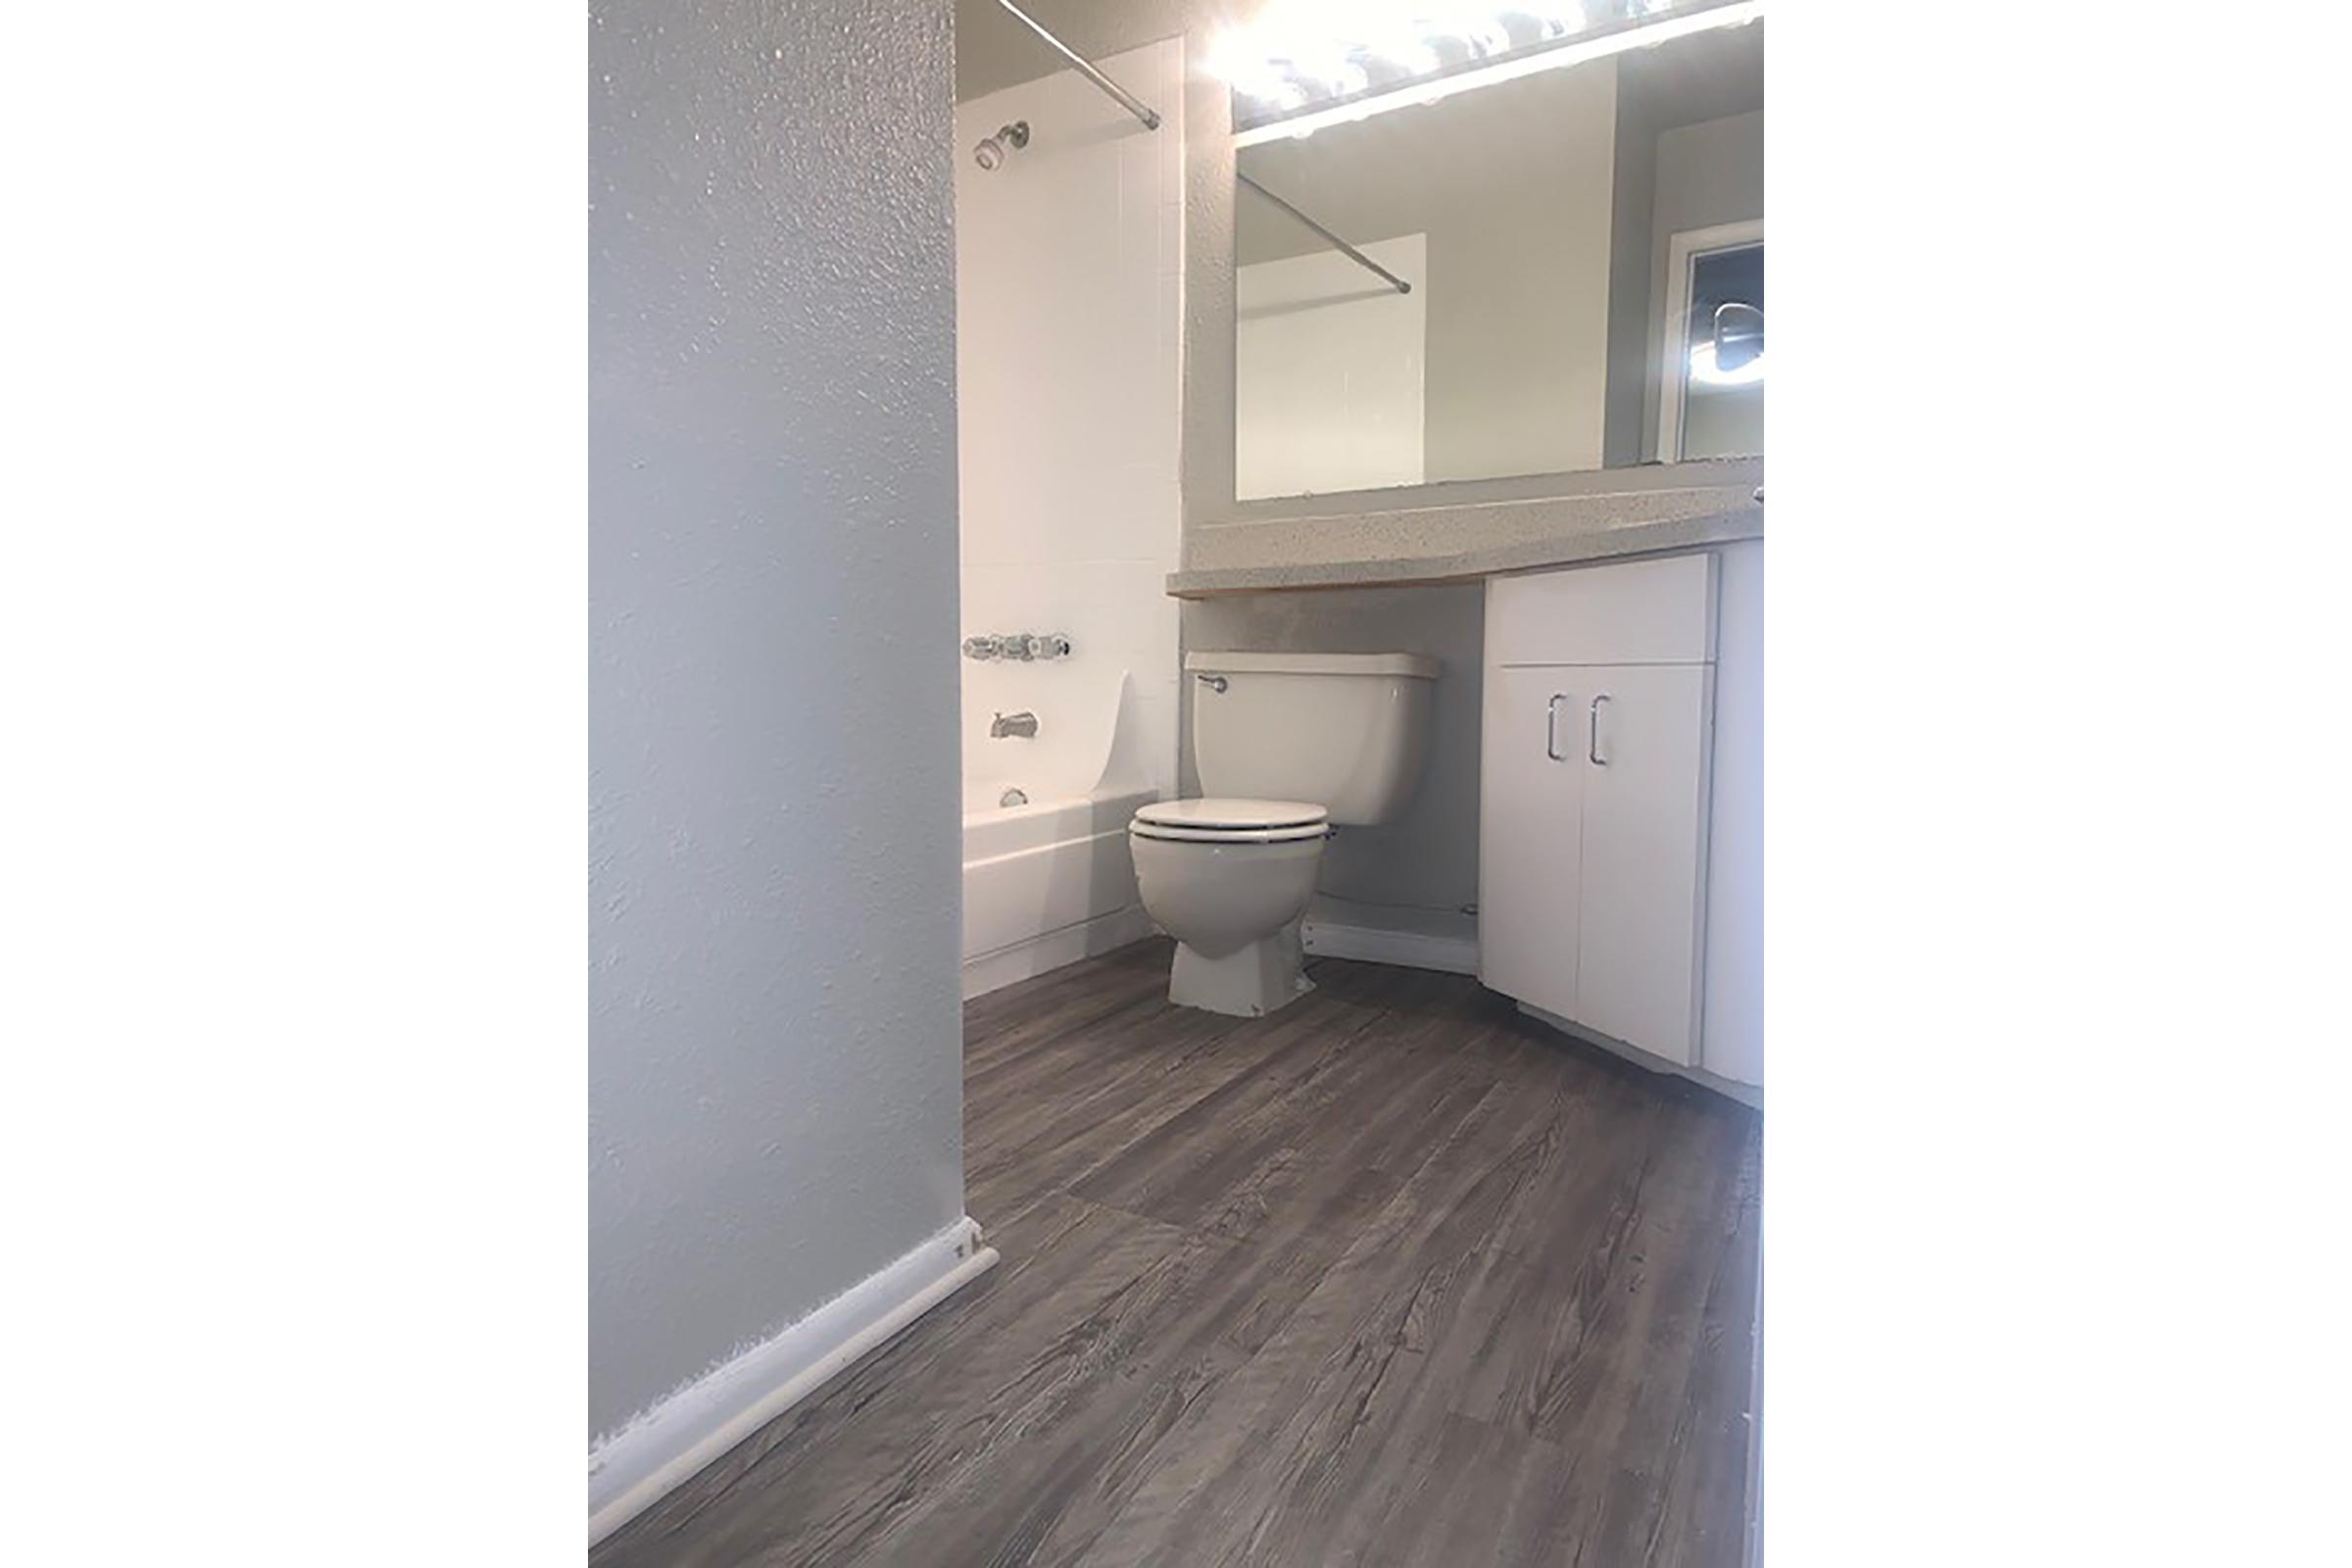 a white sink sitting next to a building